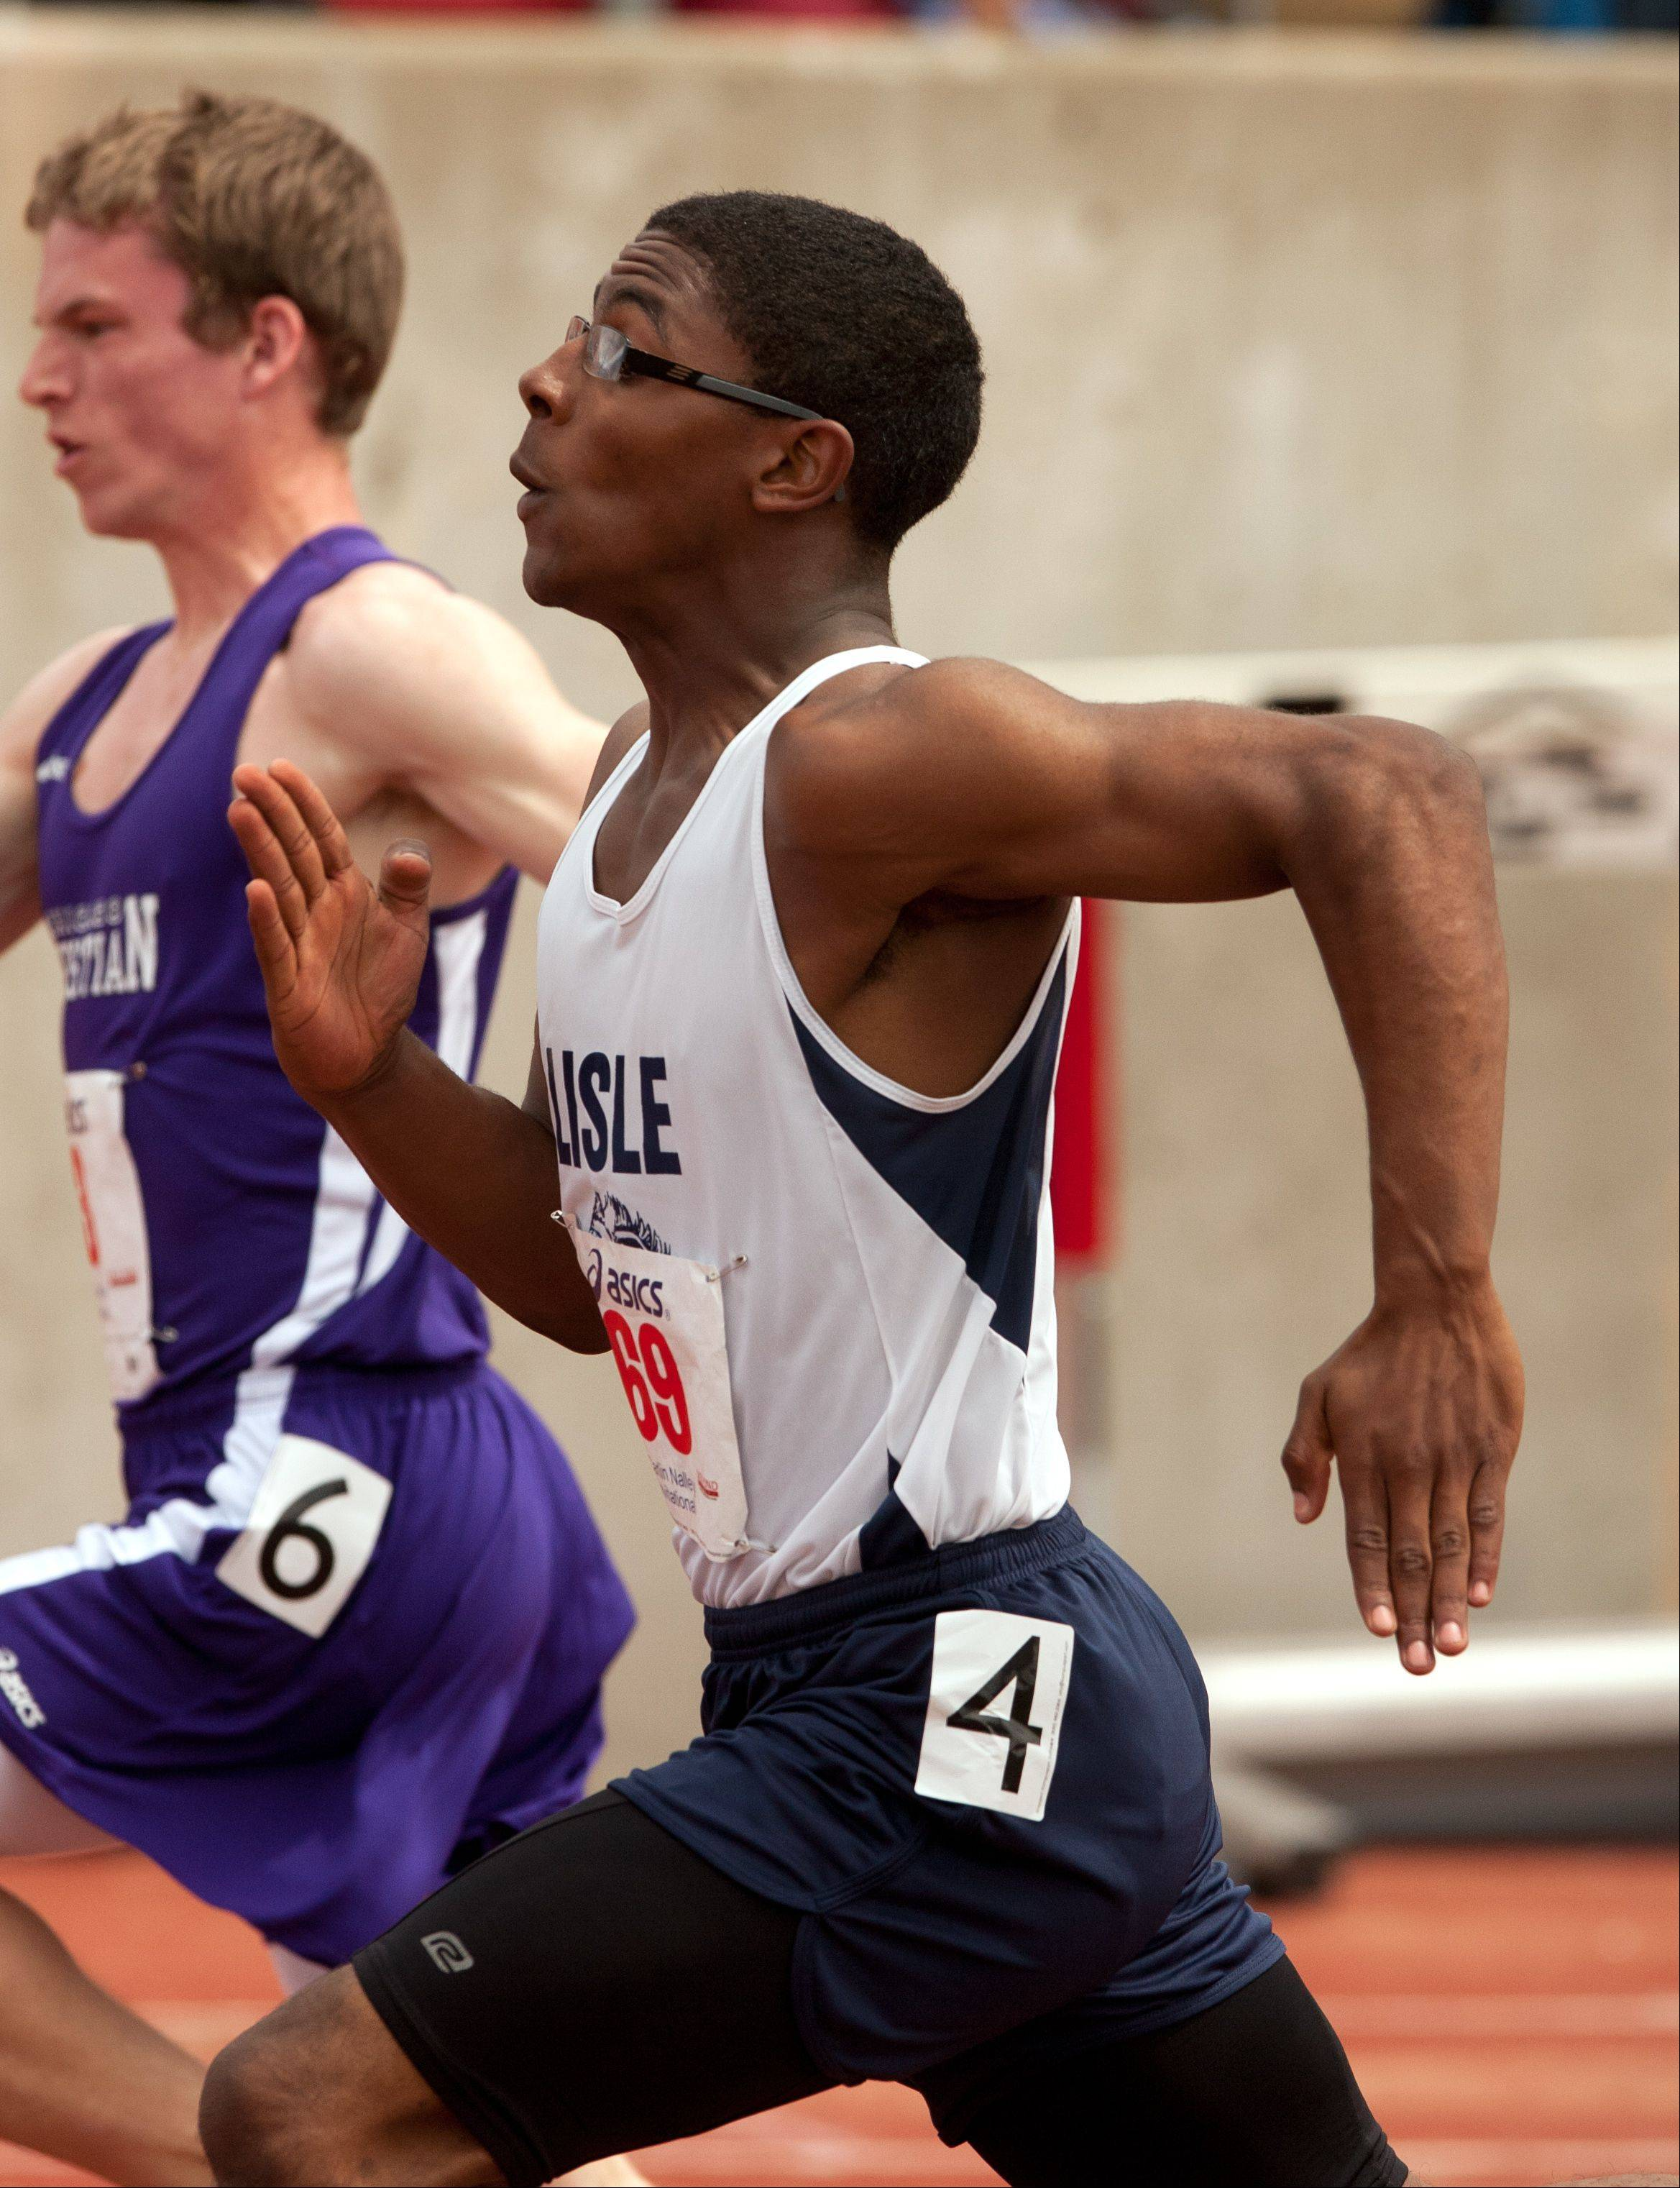 Lisle's Aaron Harris, right, competes in the 100 meter dash during the 46th annual Carlin Nalley Boys� Track Invitational at Benedictine University in Lisle.